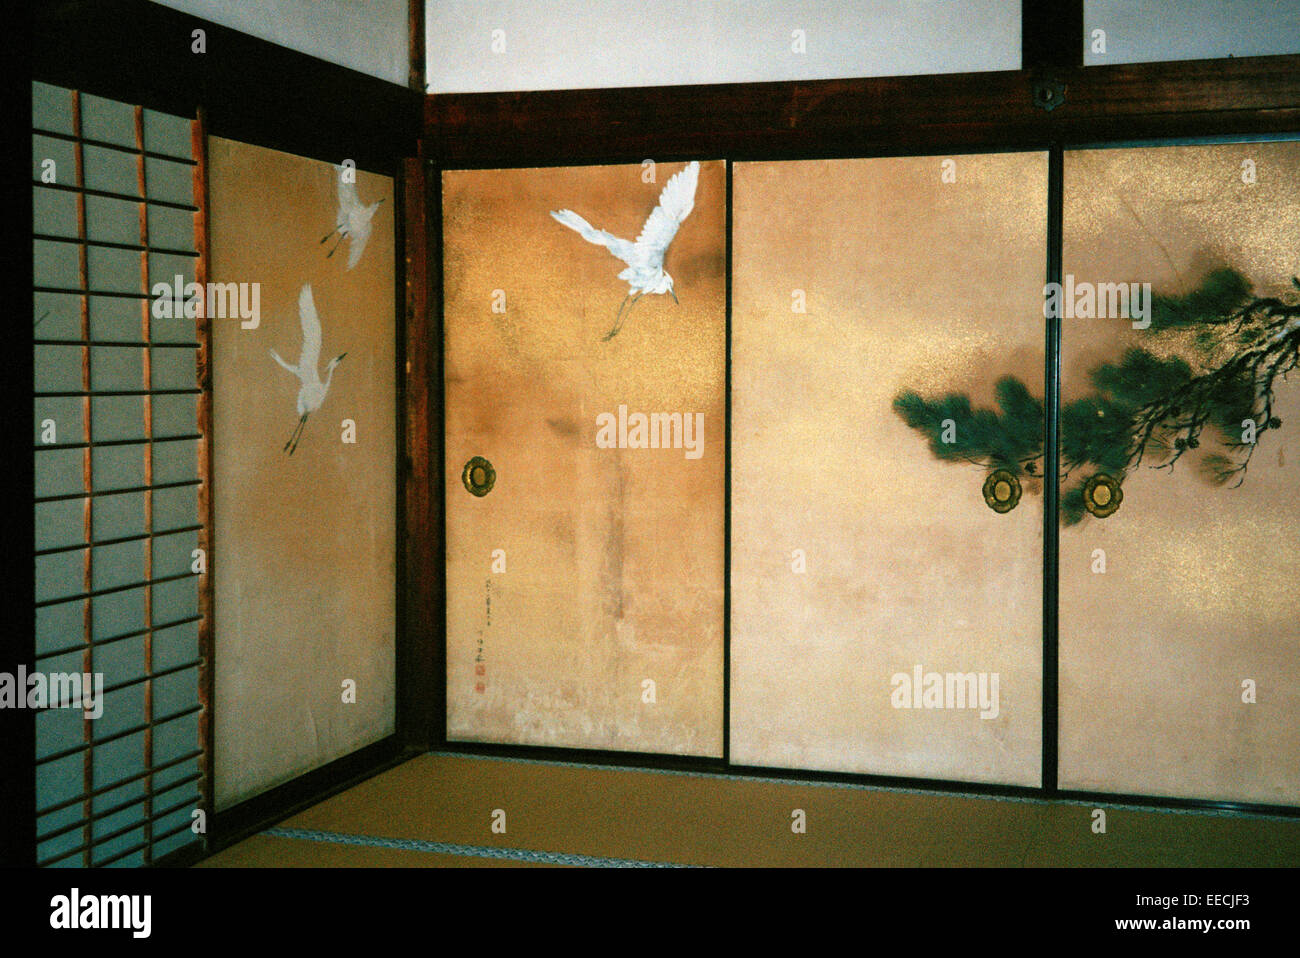 Picture of flyng heron birds on a japanese sliding doors fusuma & Picture of flyng heron birds on a japanese sliding doors fusuma ...